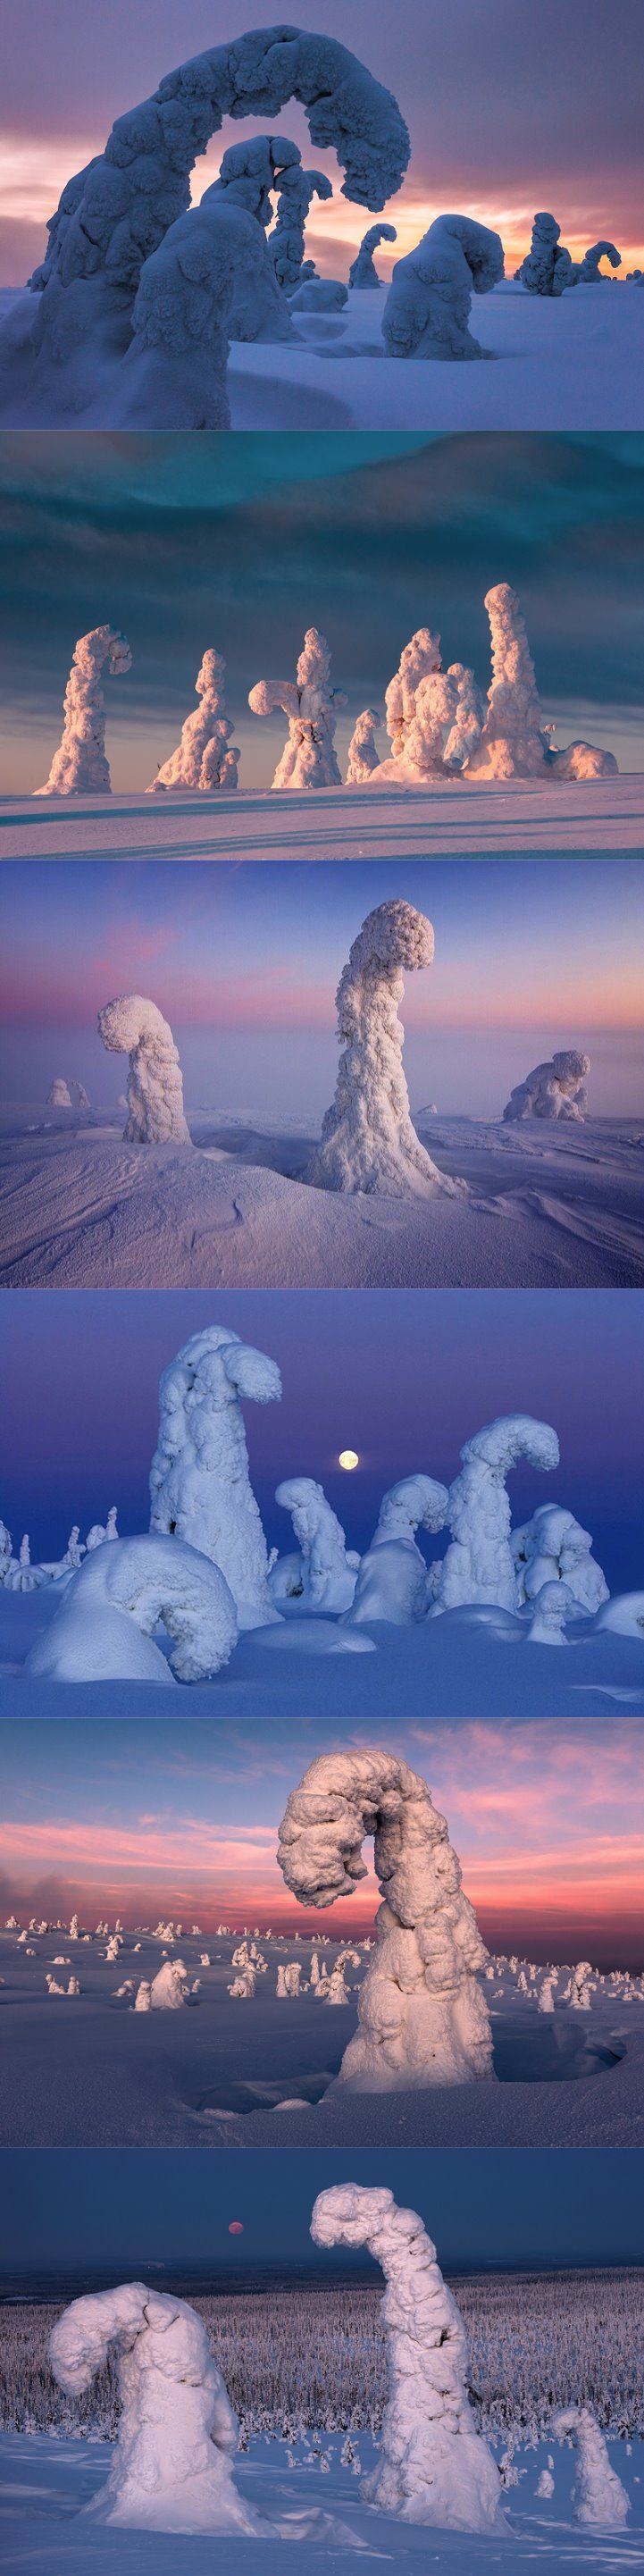 Siberian spruce trees in Finland's riisitunturi national park become covered a hard rime known as tykky as supercooled water droplets in fog freeze to the windward side of their branches. some trees can collect as much as three to four tonnes of this white ice, which is less dense than the familiar clear ice.